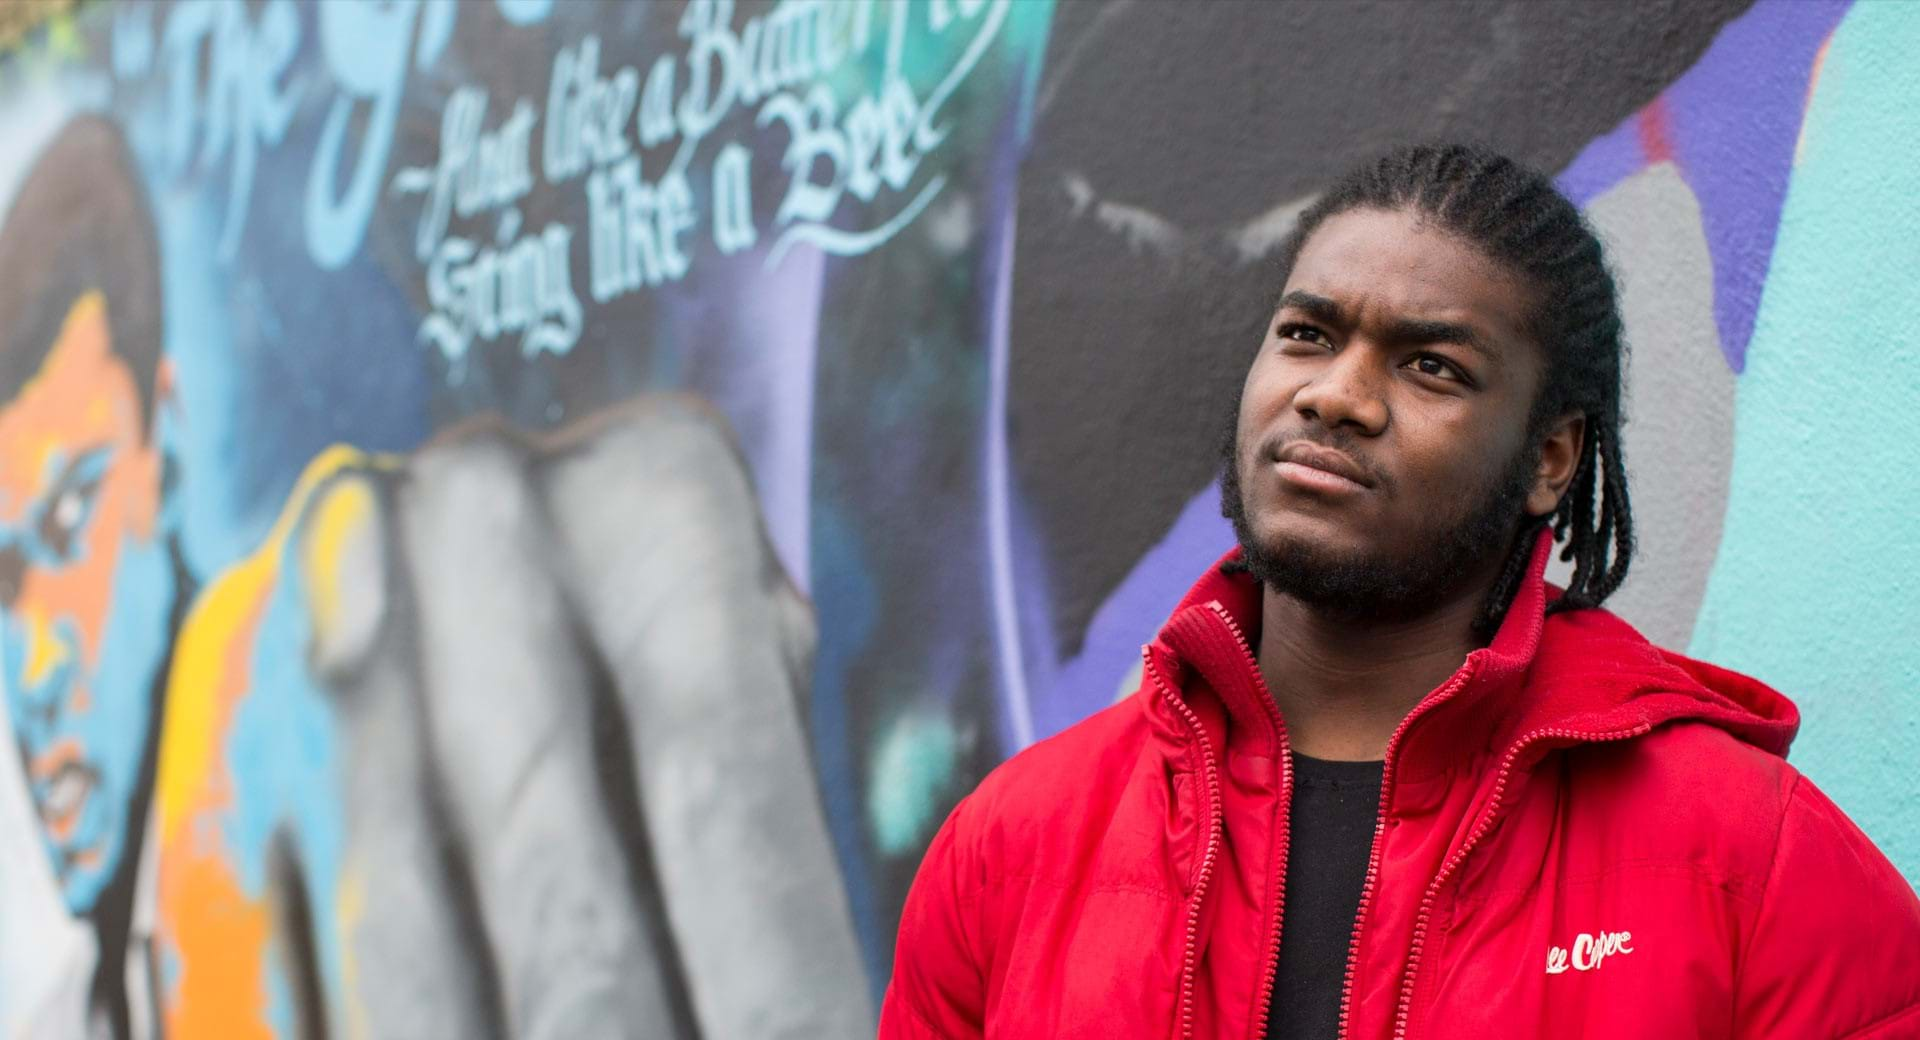 Abdul, a Centrepoint young person.